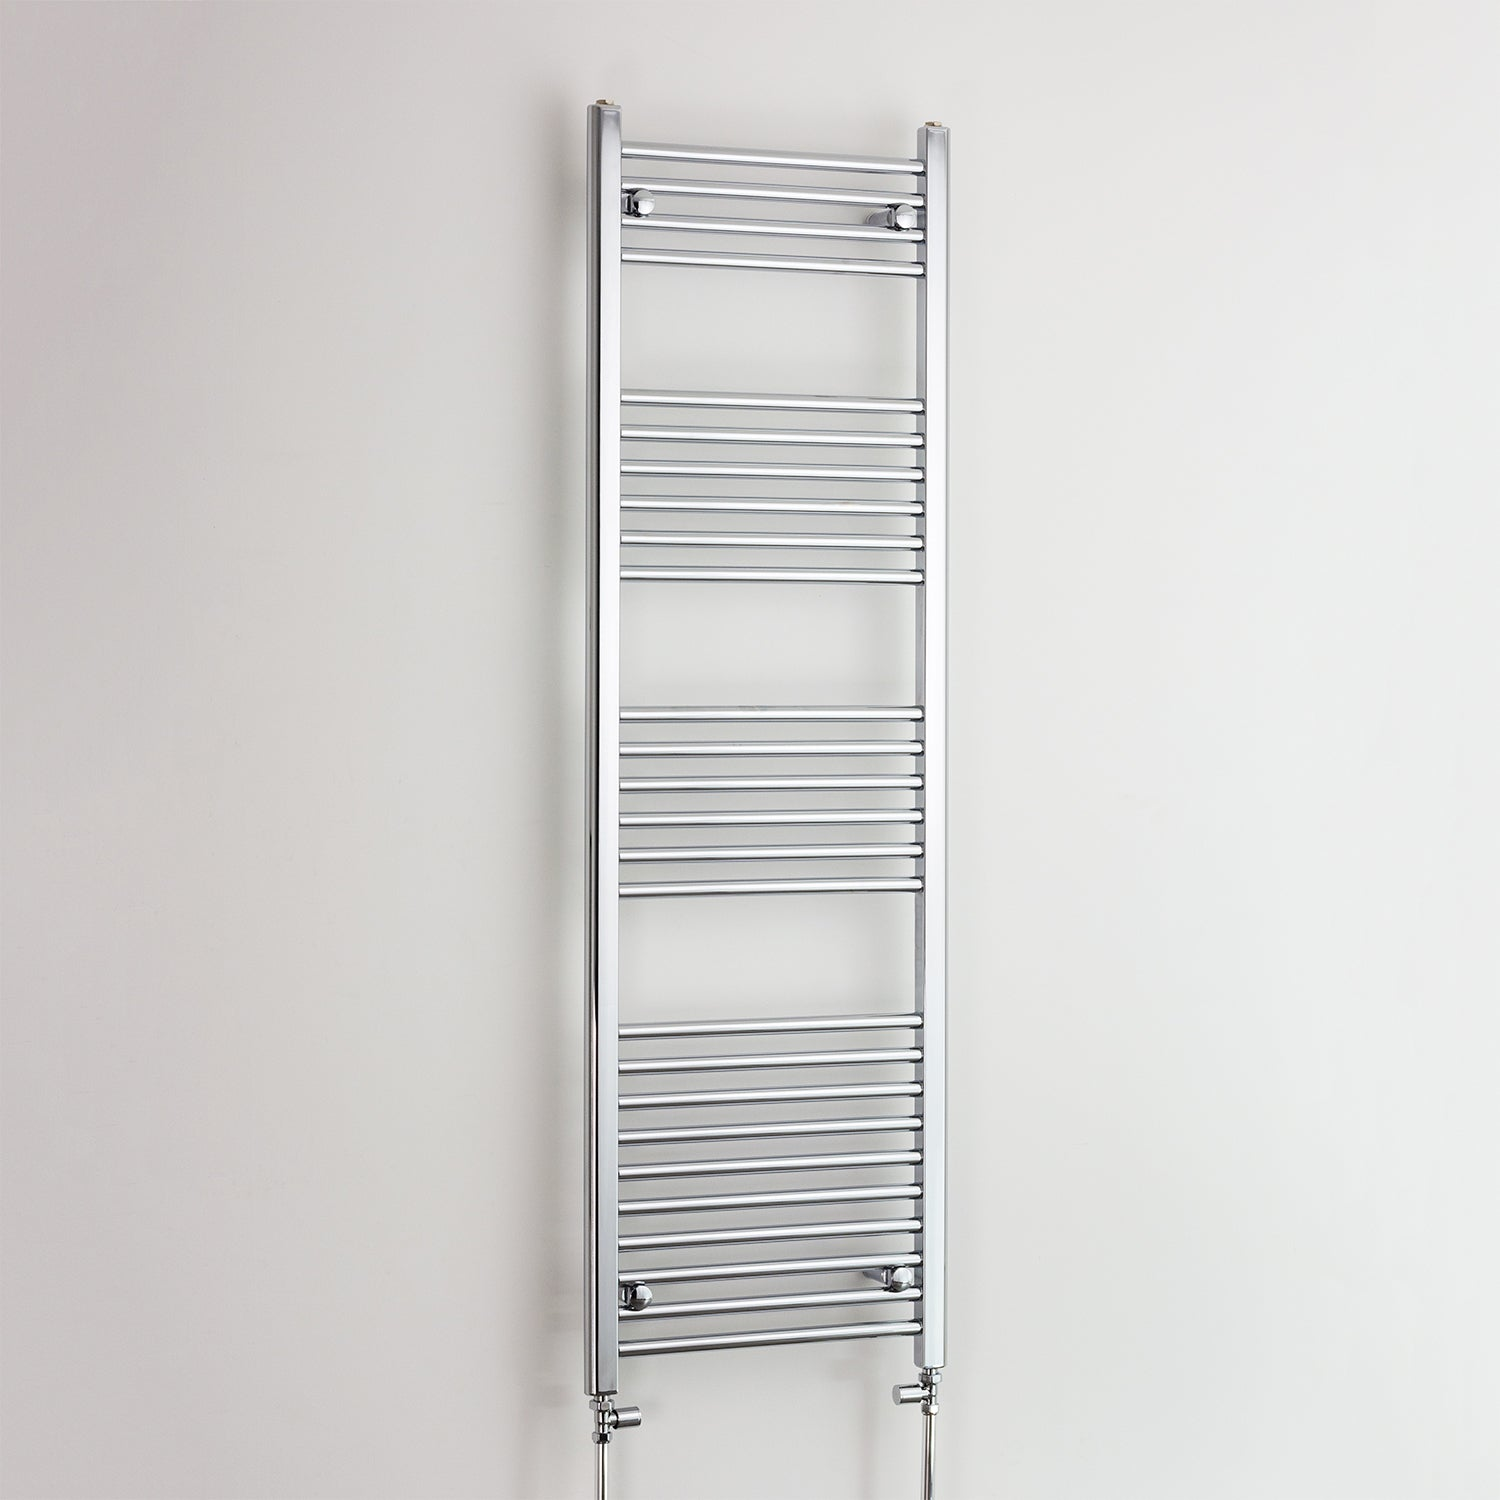 500mm Wide 1600mm High Curved Chrome Heated Towel Rail Radiator HTR,With Straight Valve